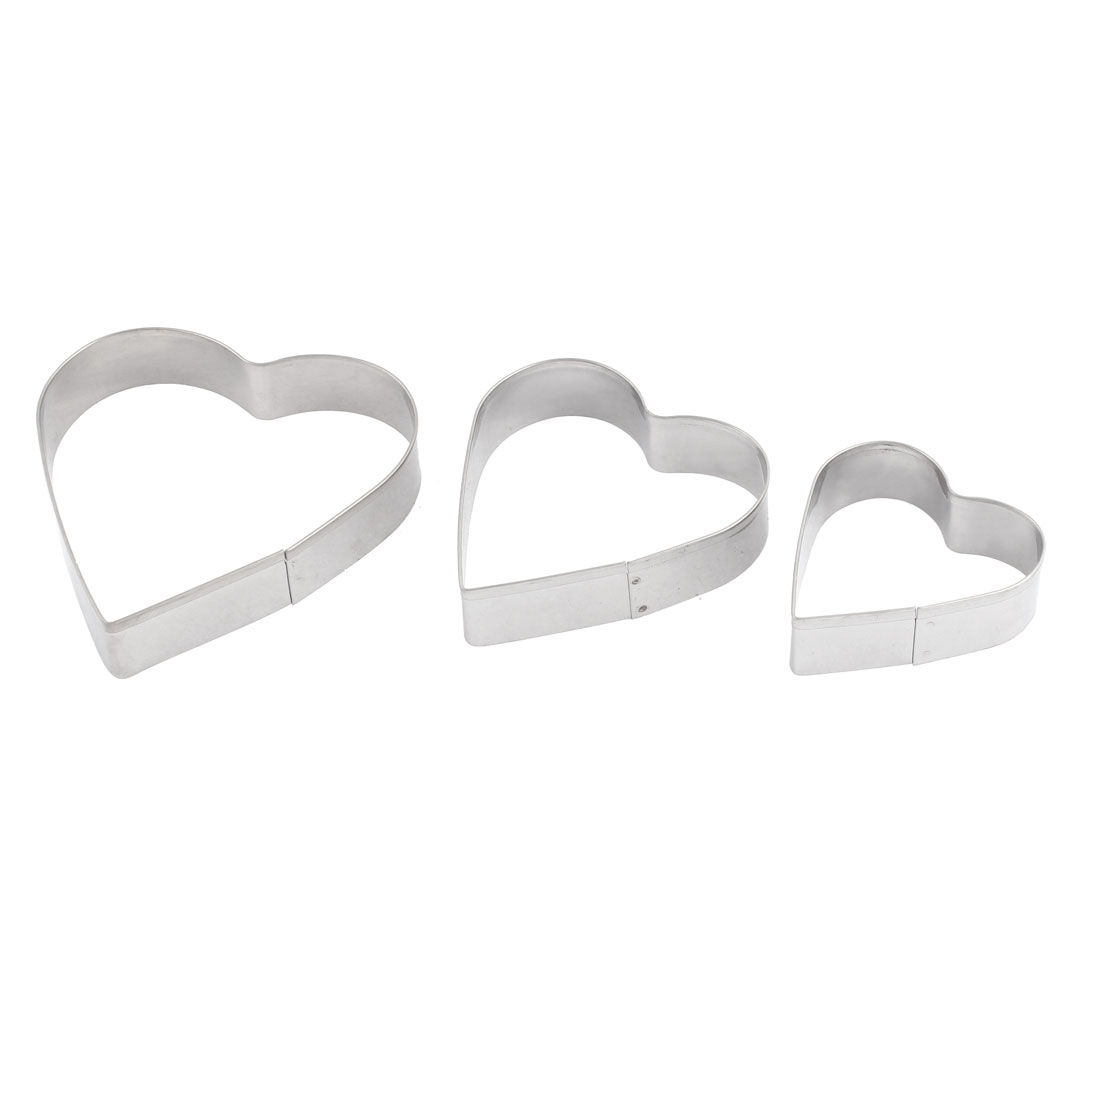 3PCS Metal Heart Design Biscuit Cookie Cake Cutter Mold Mould Decor Baking DIY Tool